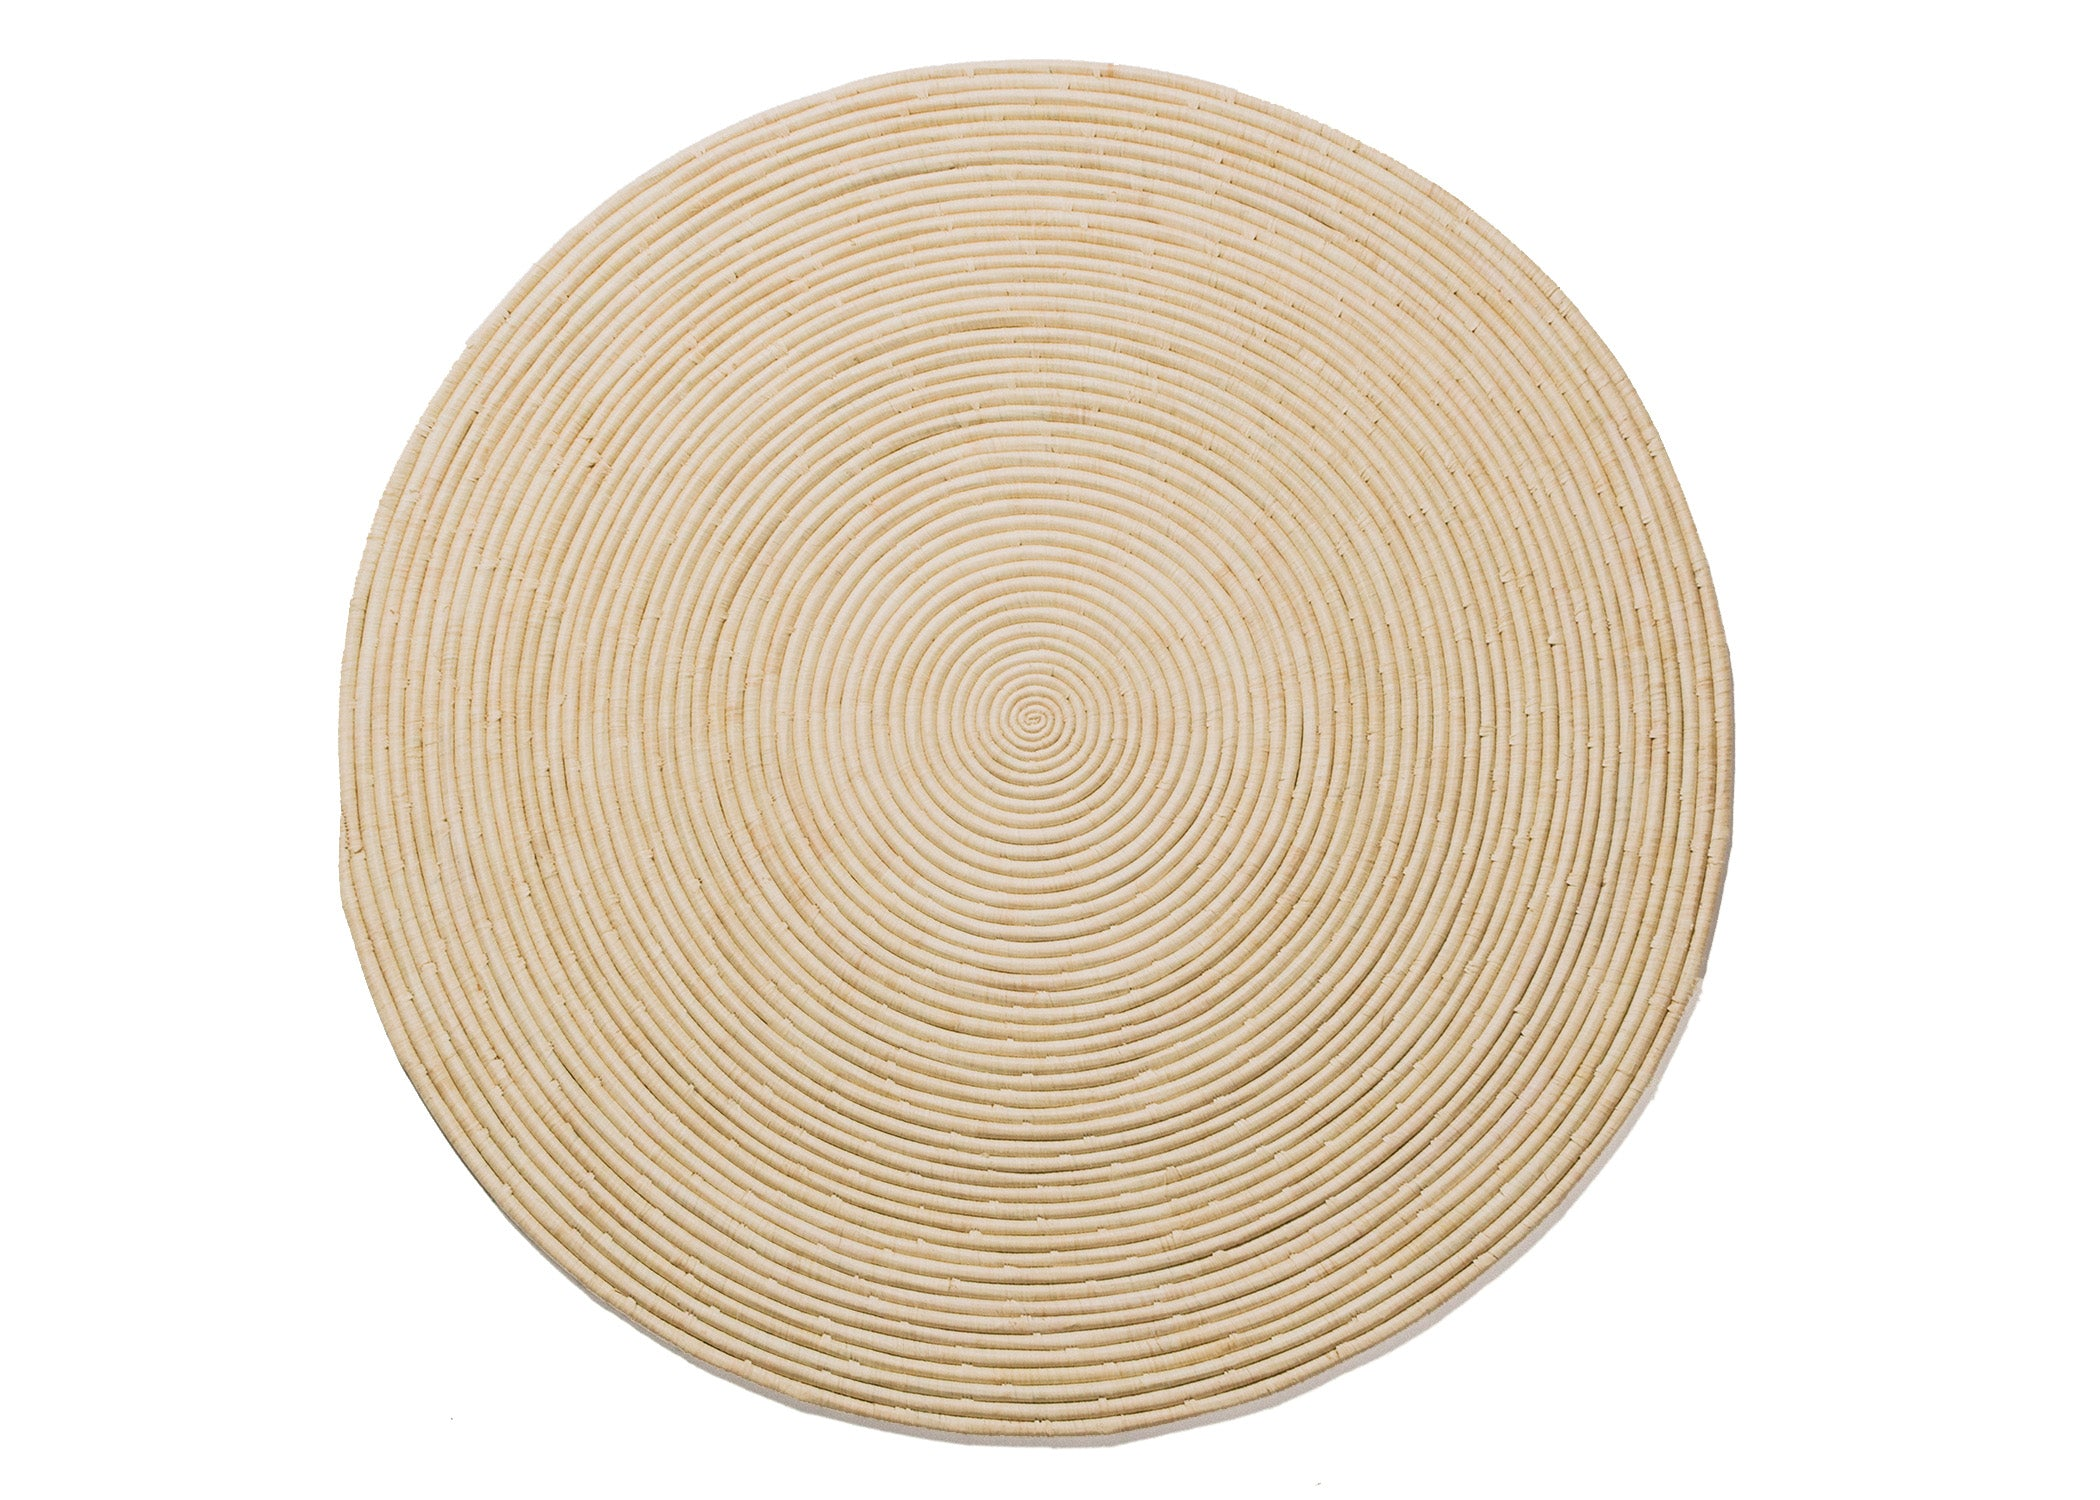 Natural Large Raffia Disc - KAZI - Artisan made high quality home decor and wall art